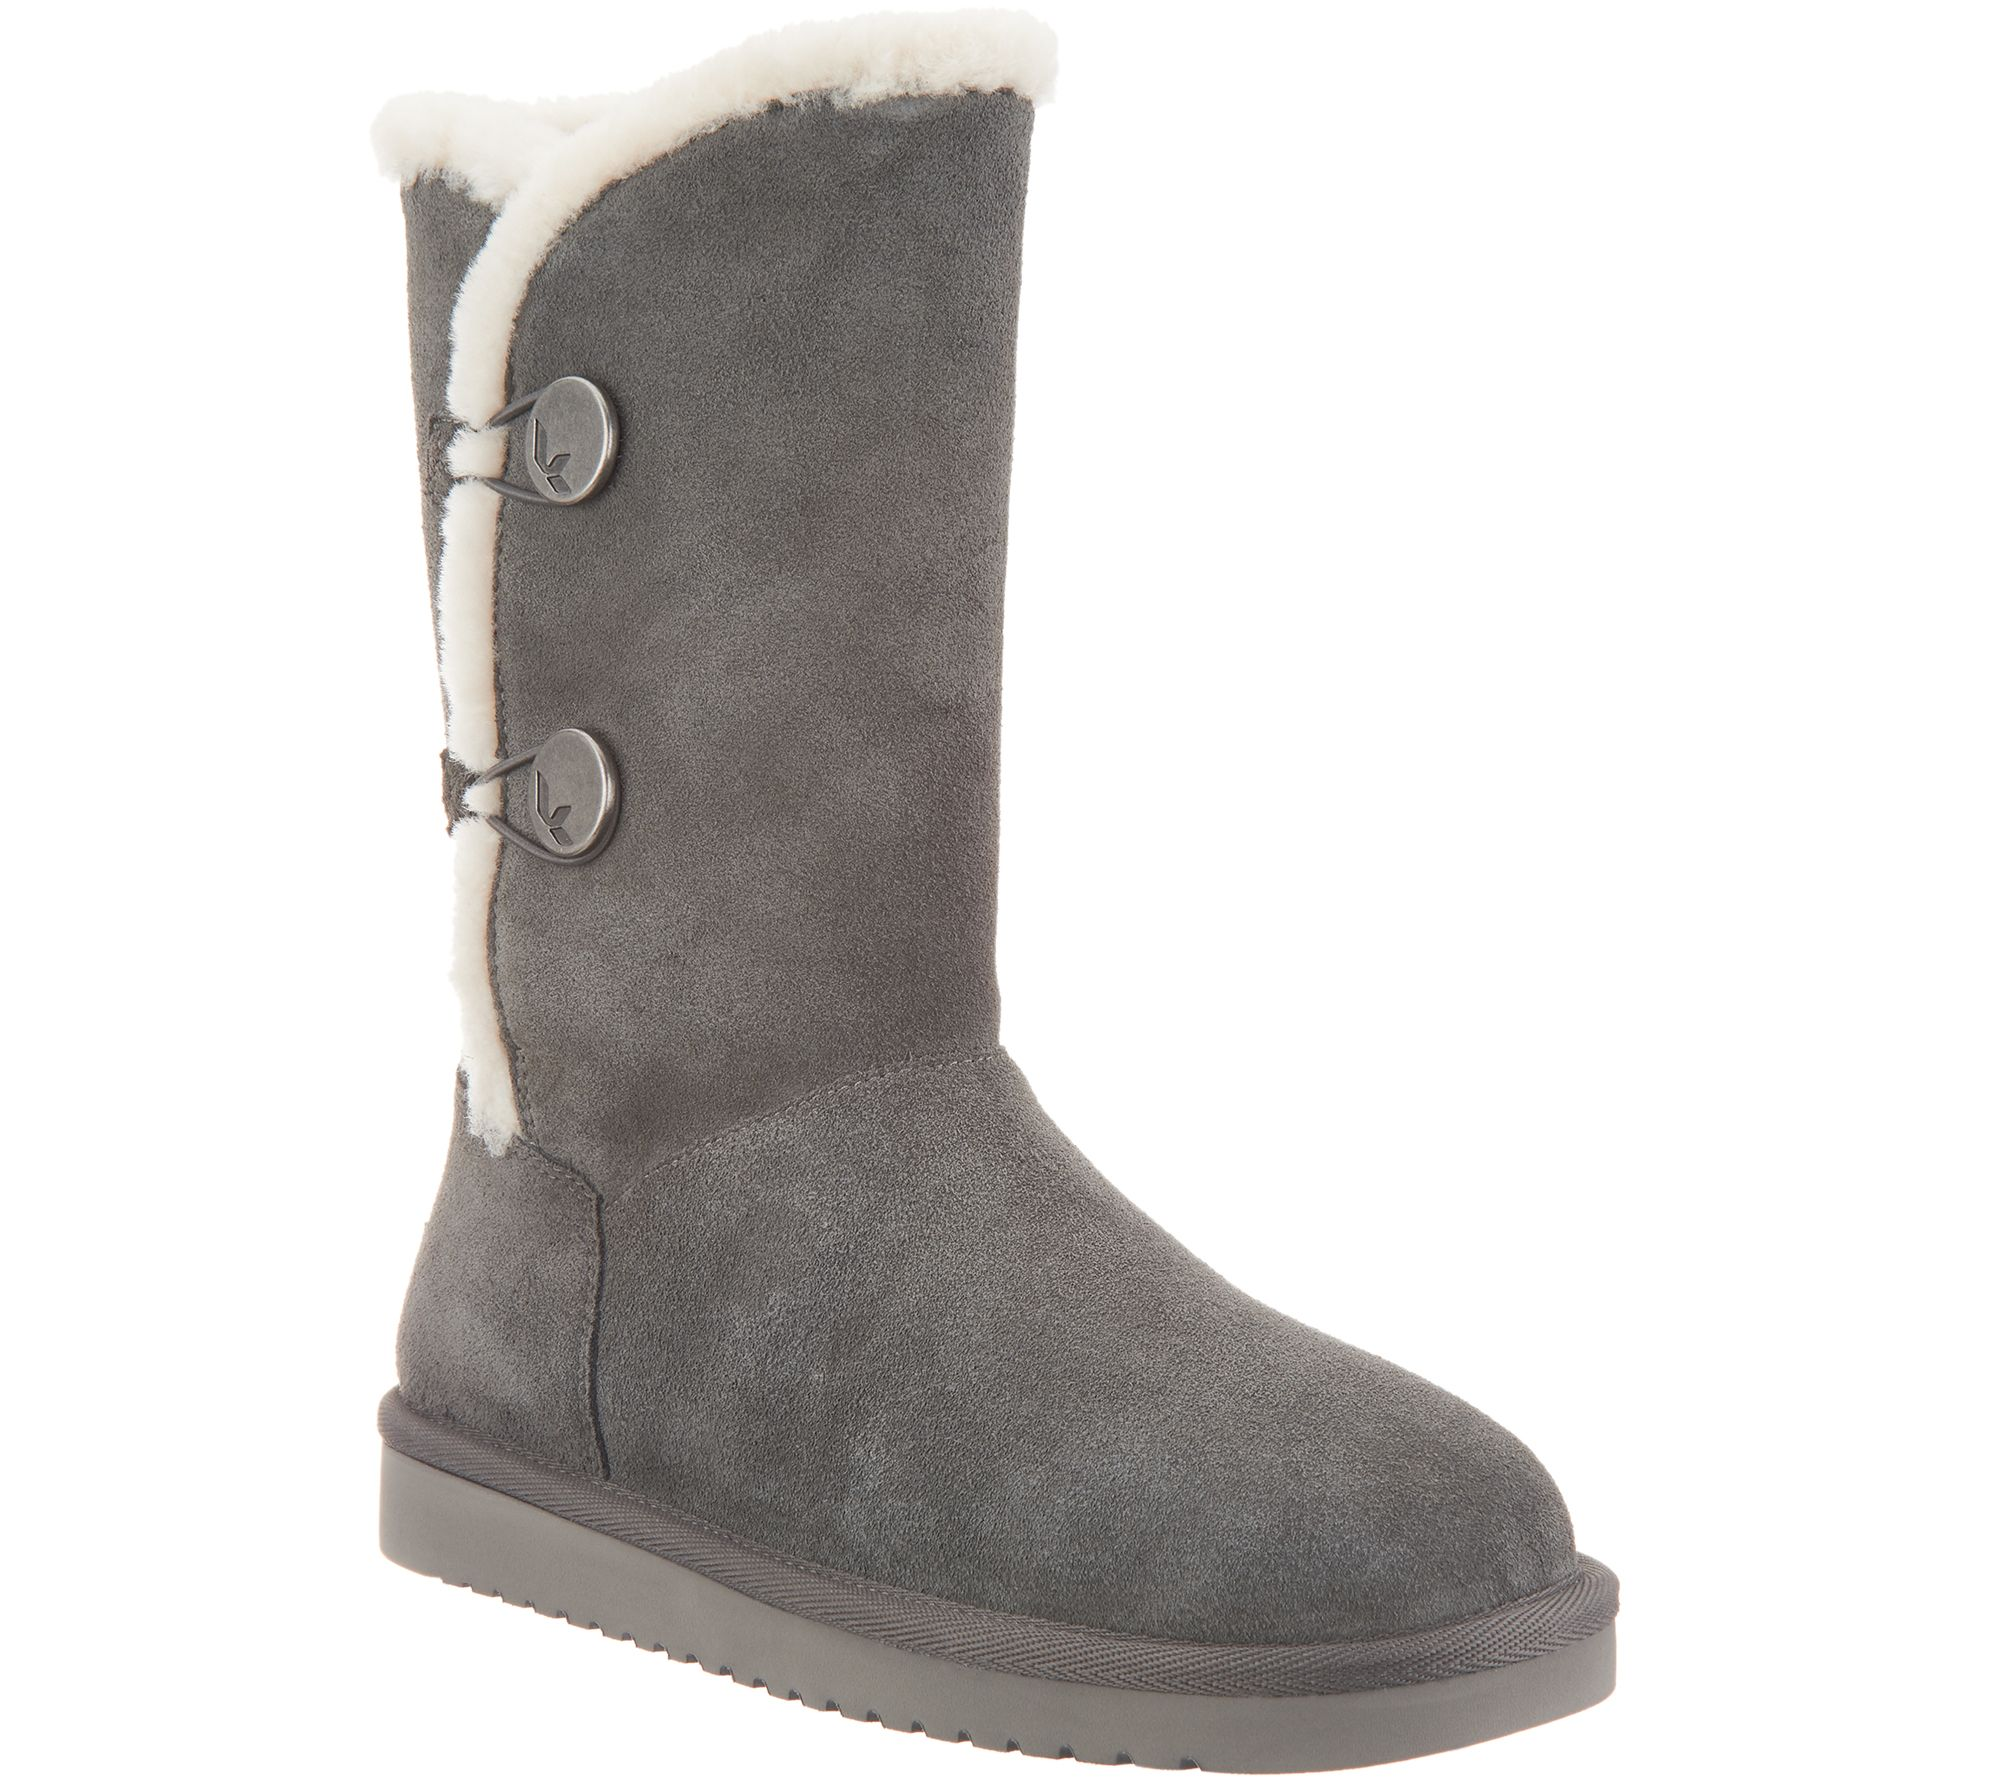 6d6ee07160 Koolaburra by UGG Suede Button Tall Boots - Kinslei - Page 1 — QVC.com